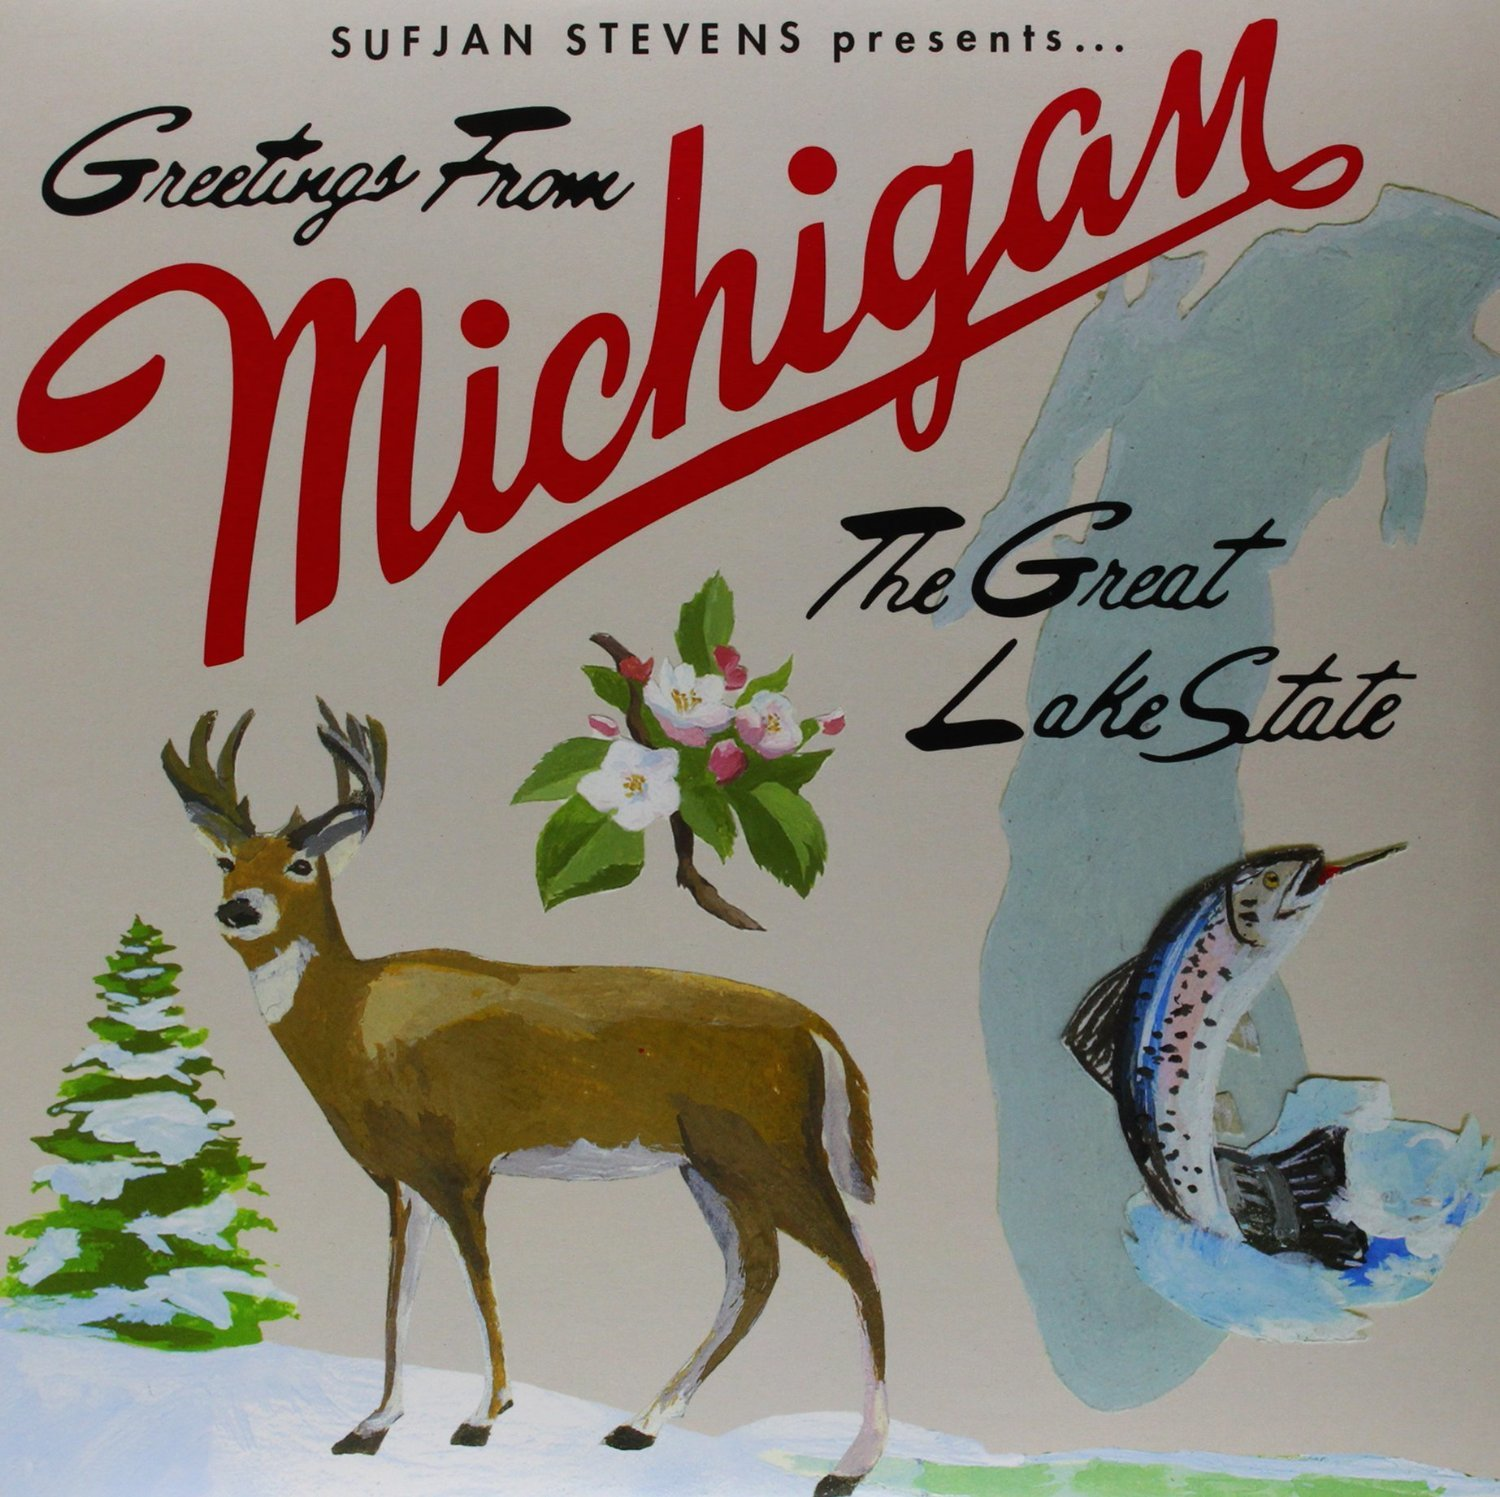 Greetings from michigan the great lake state 2lp sufjan stevens greetings from michigan the great lake state 2lp by sufjan stevens image m4hsunfo